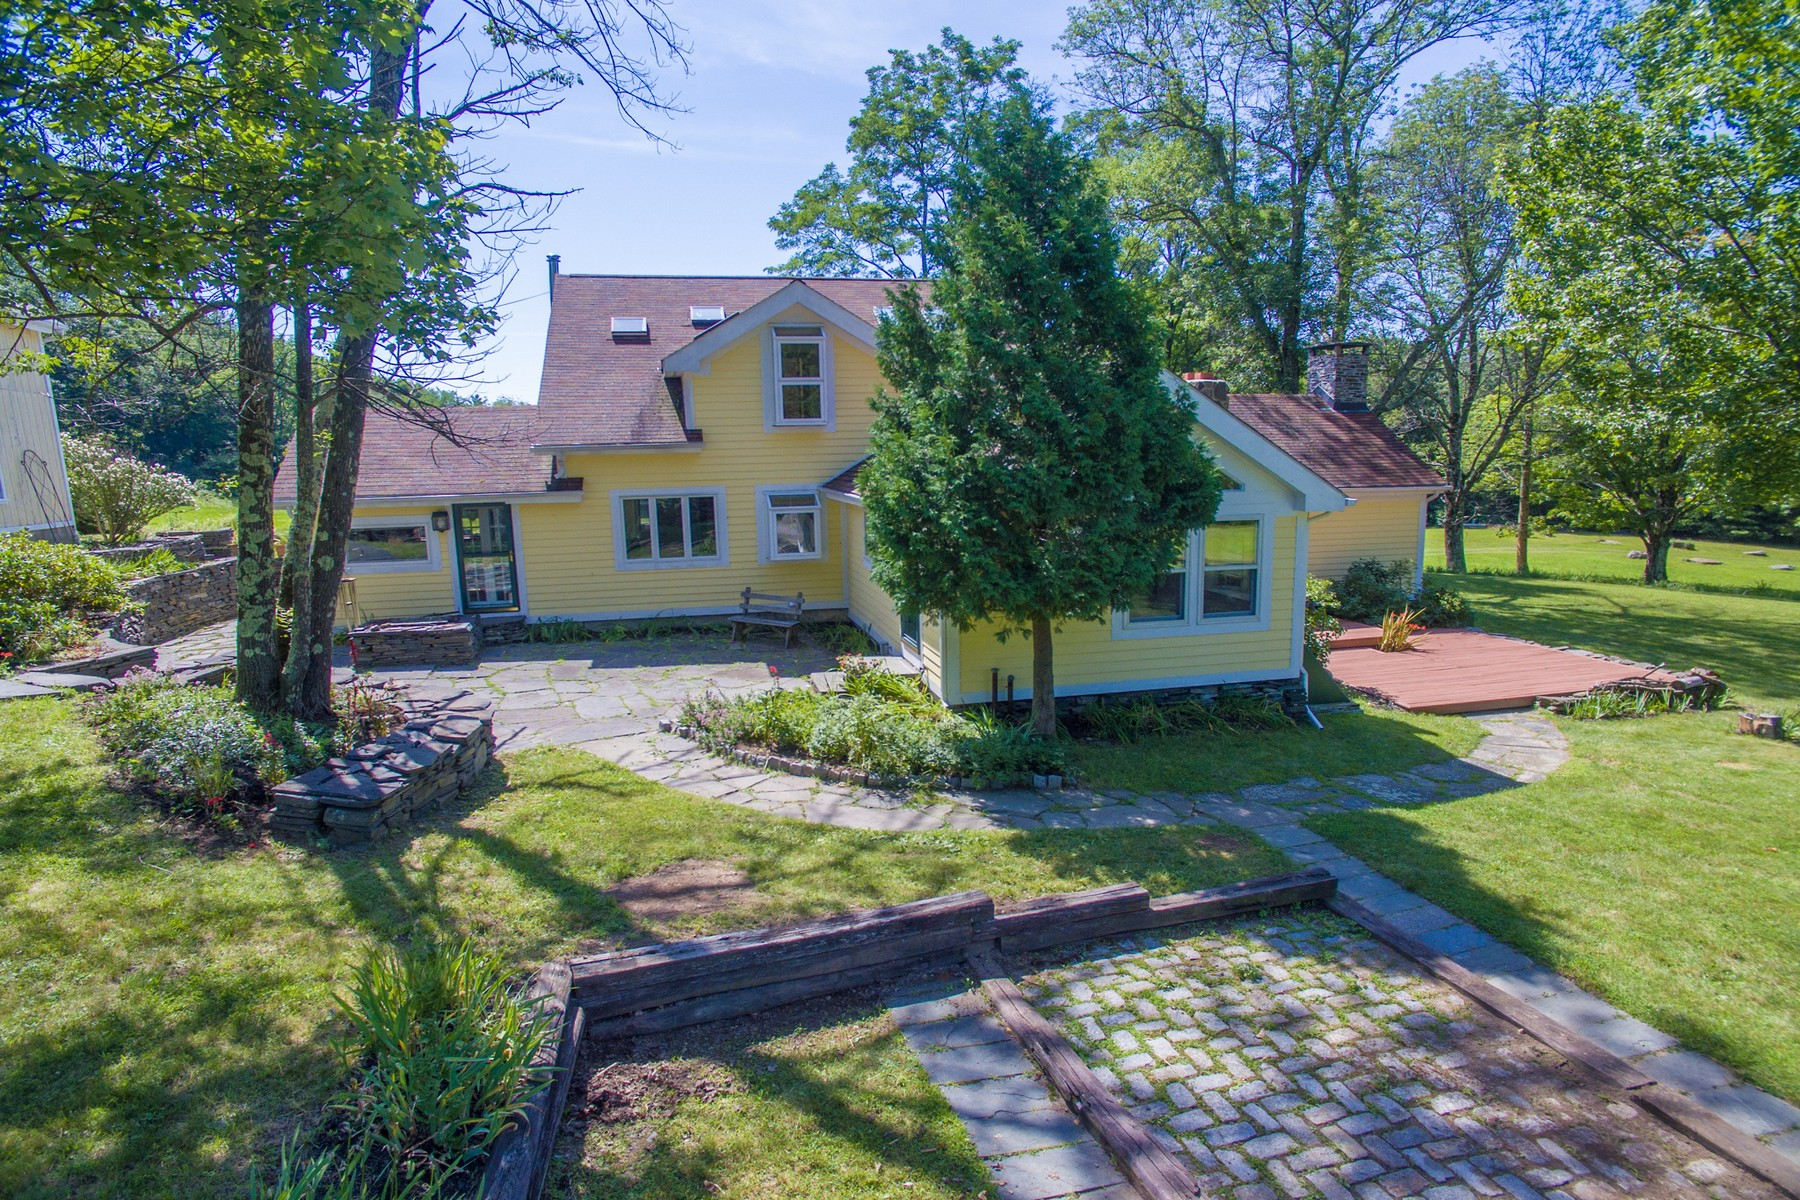 Single Family Home for Sale at VanWinkle Farmhouse on Butternut Pond 170 Chase Rd Shokan, New York 12481 United States